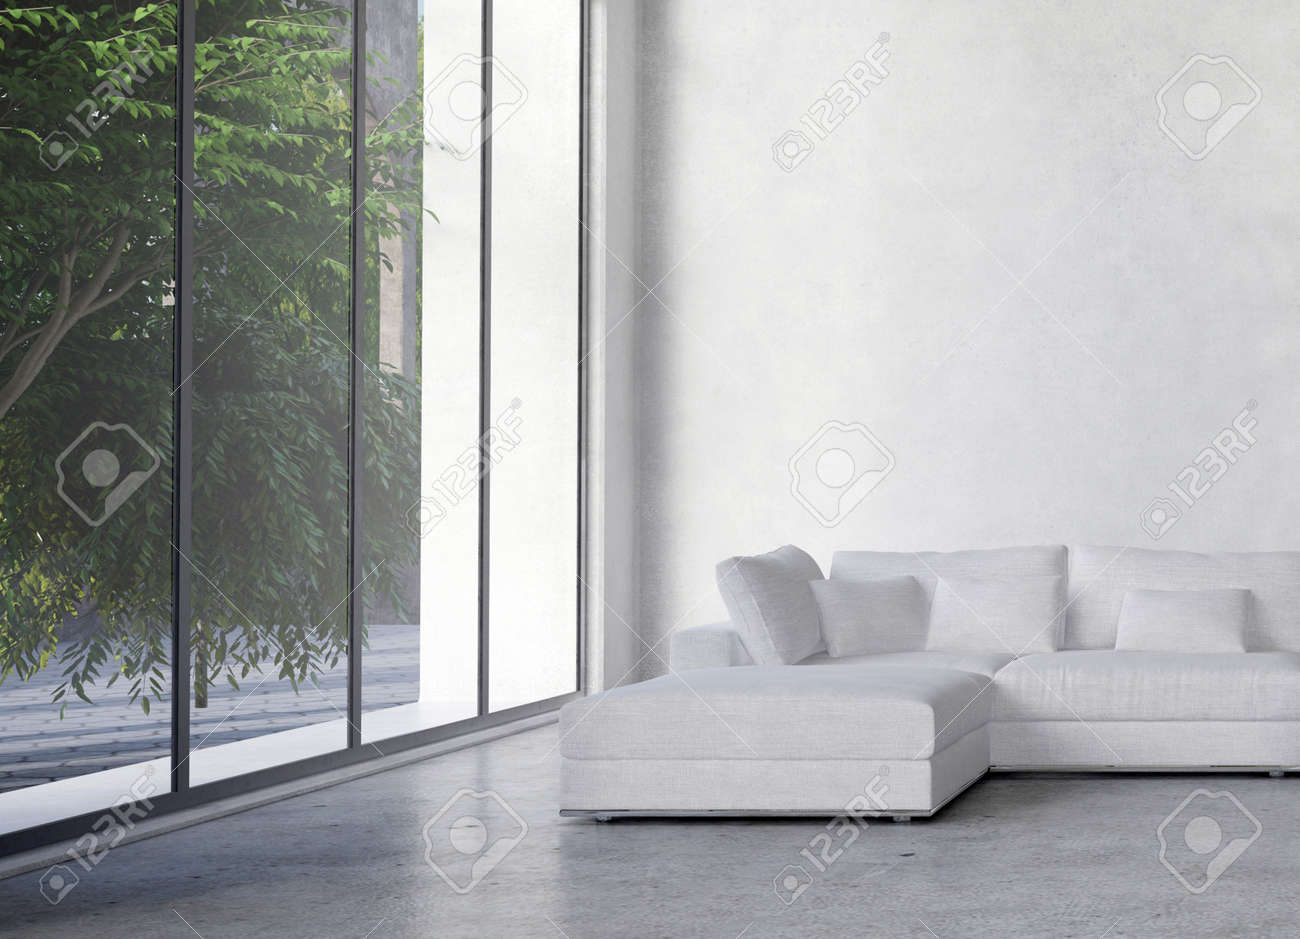 Large Living Room Window Minimalist Large Modern Minimalist Living Room Interior With A Double Volume .